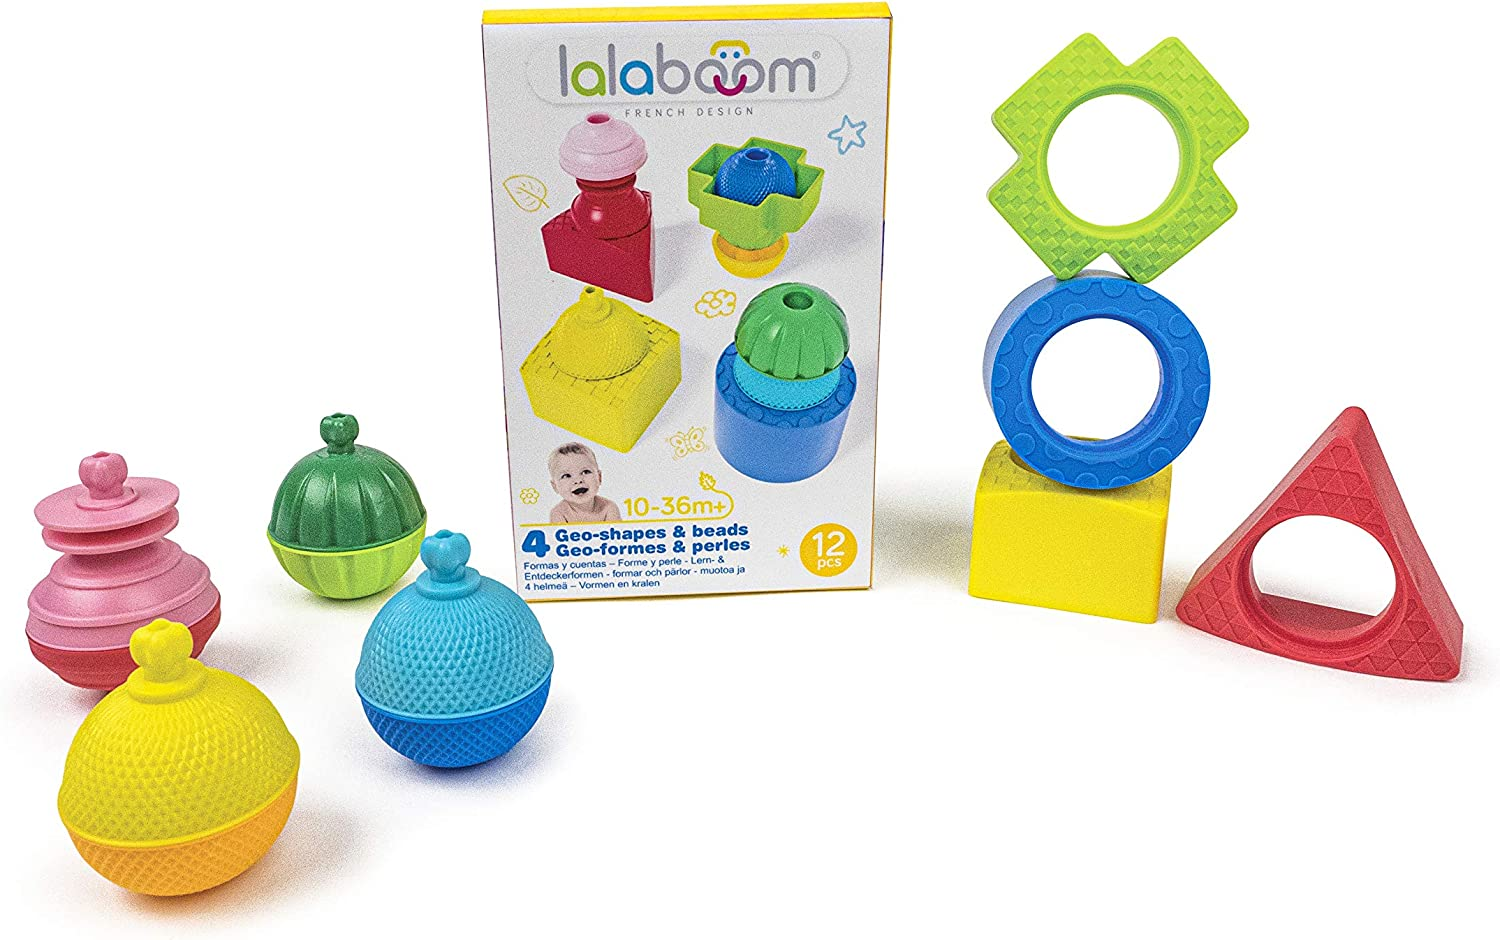 Multicolor 12 Pieces Color and Shapes Construction Game for Children from 10 Months to 2 Years Old First Beads to Assemble Lalaboom BL660 4 Shapes and Educational Beads